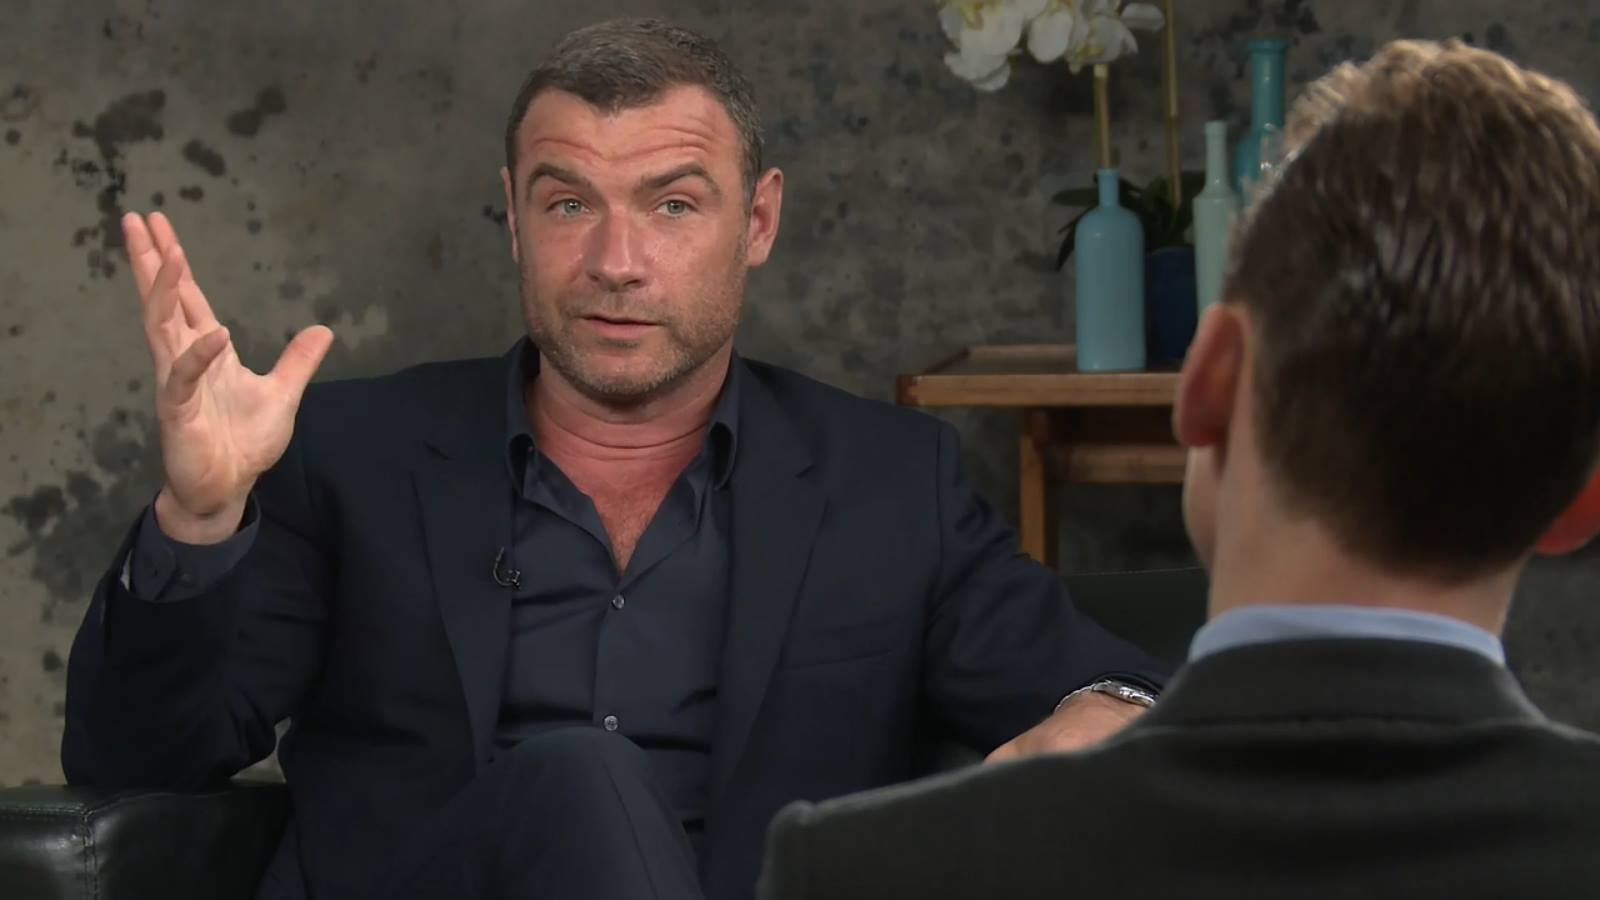 Liev Schreiber Profile Pics Dp Images - Whatsapp Images